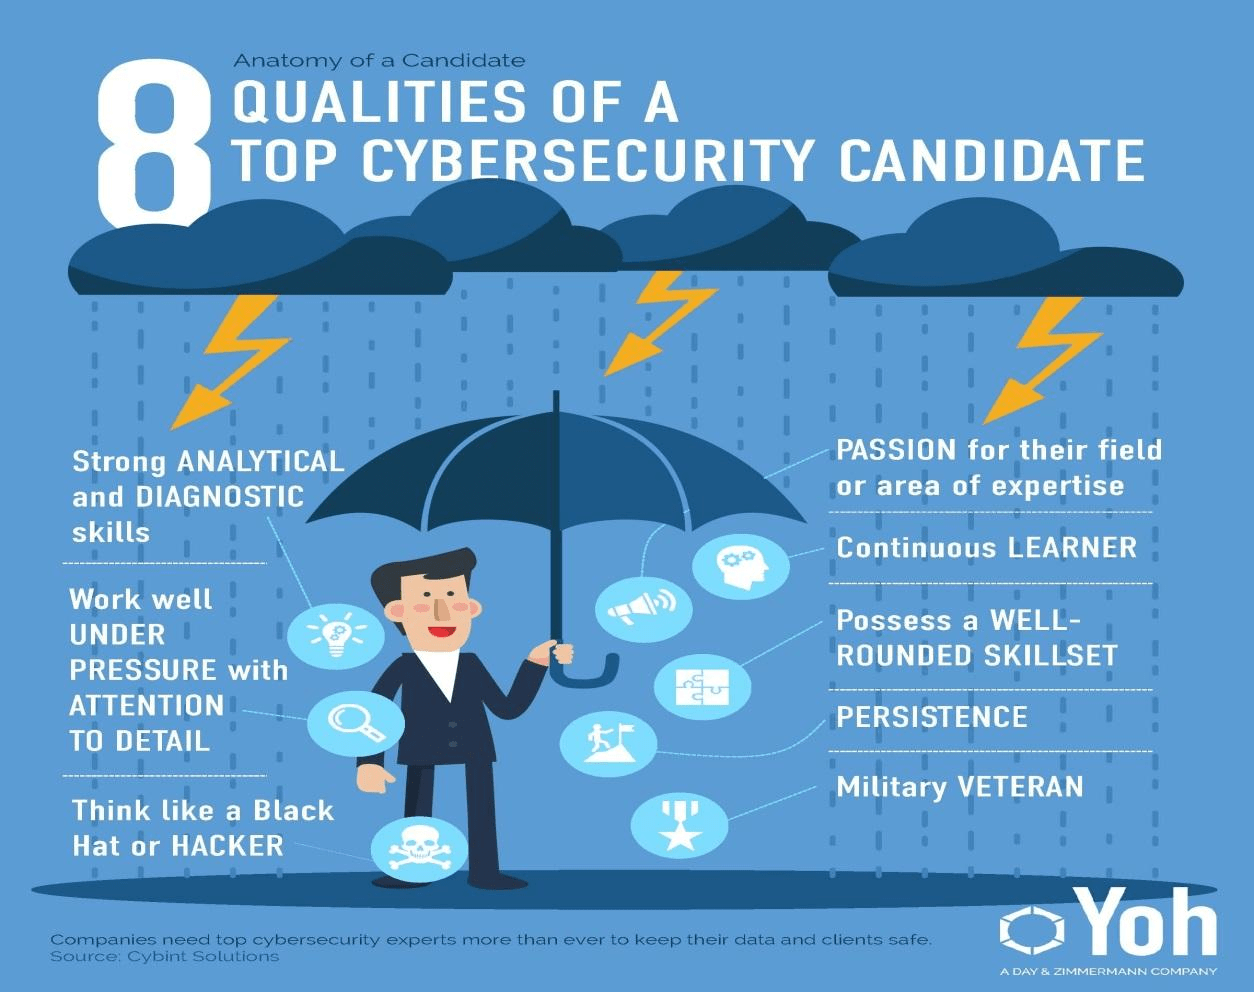 careers in Cybersecurity